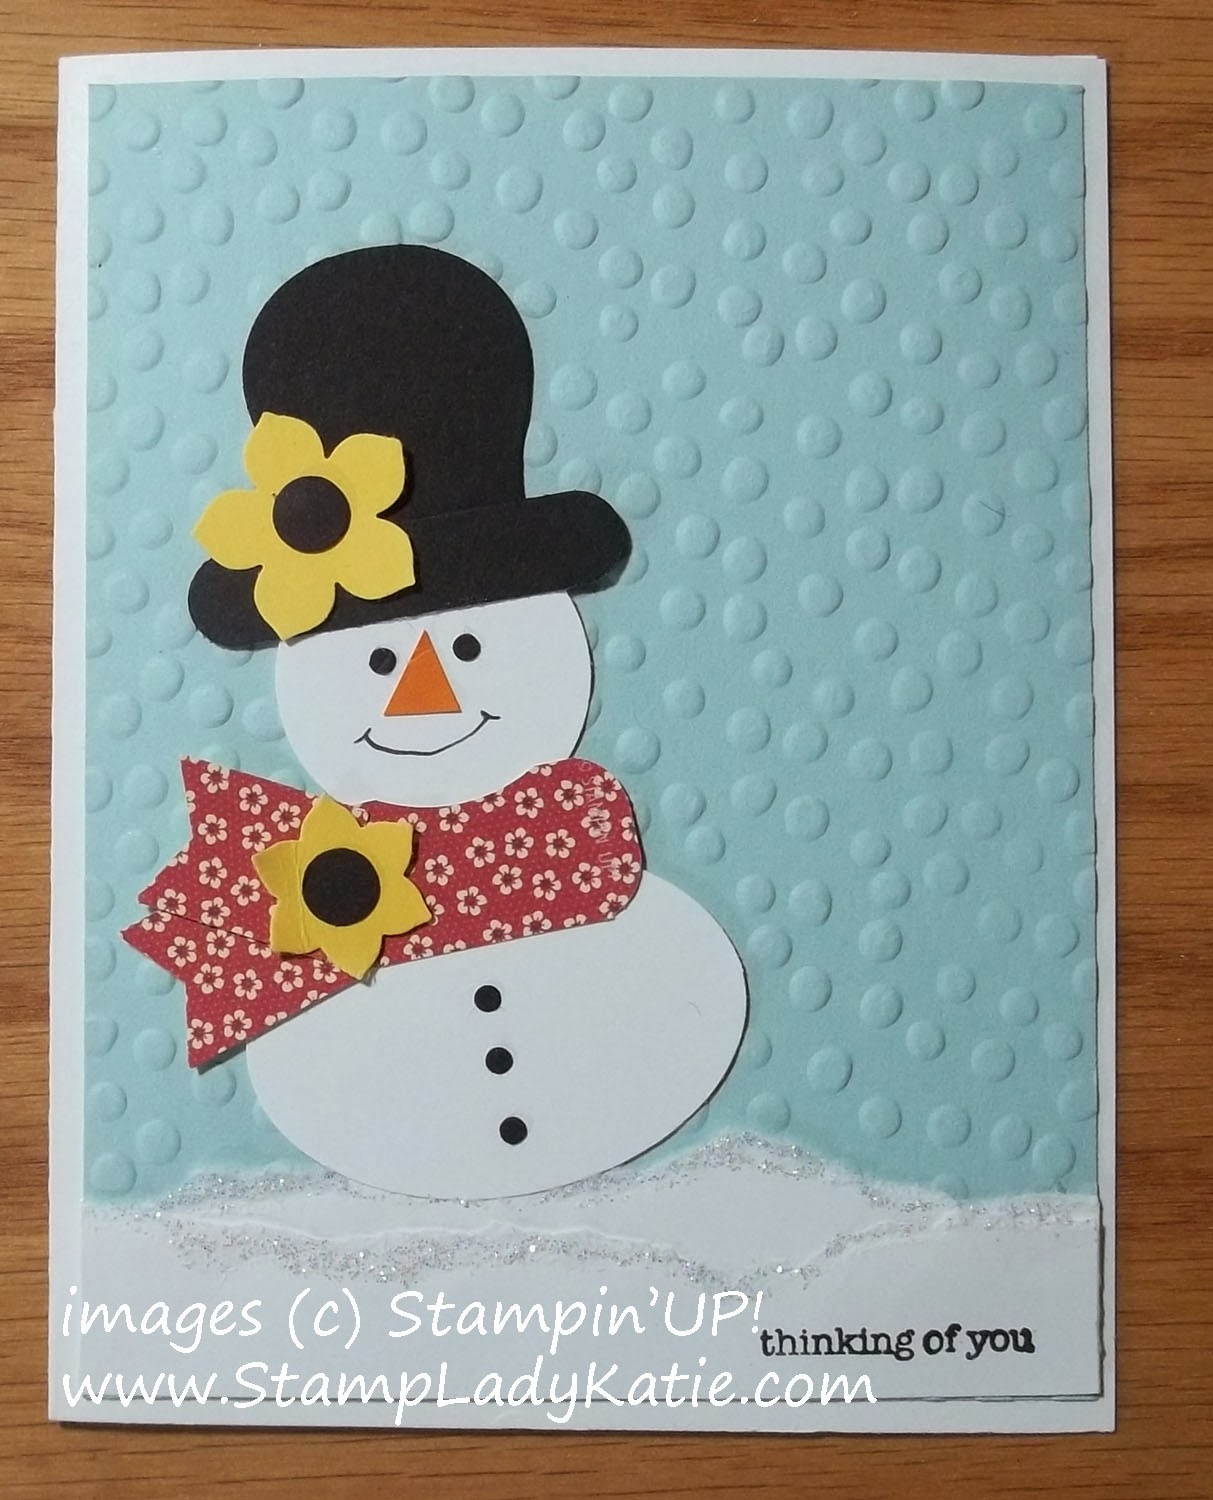 Stampin'UP!'s Petite Petite Petals Punch decorates a Punch Art Snowman Card